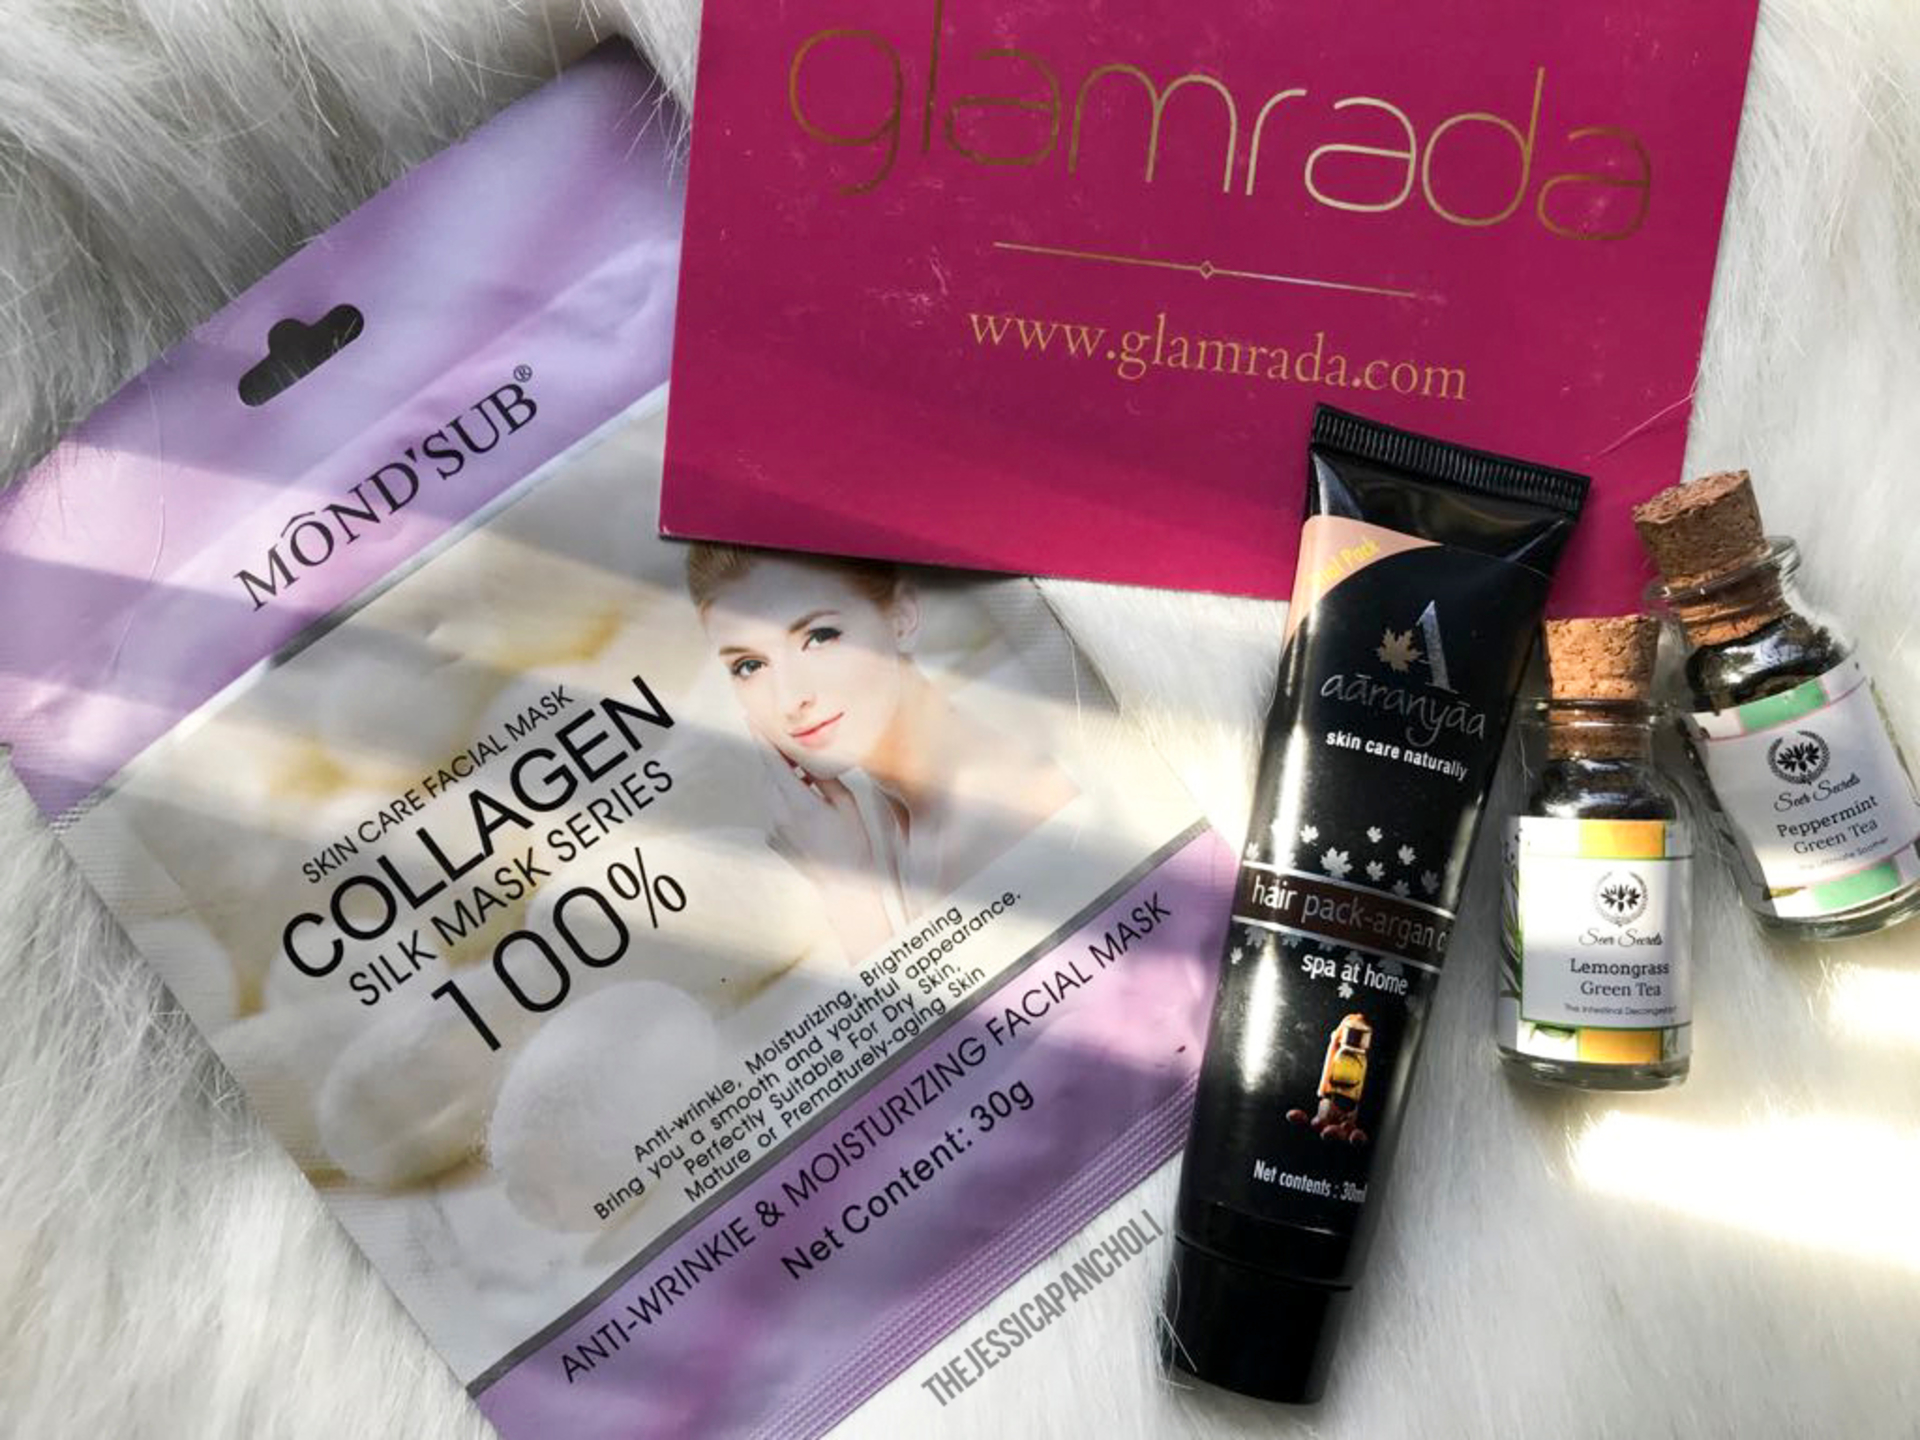 Glamrada March Trial Box Review image